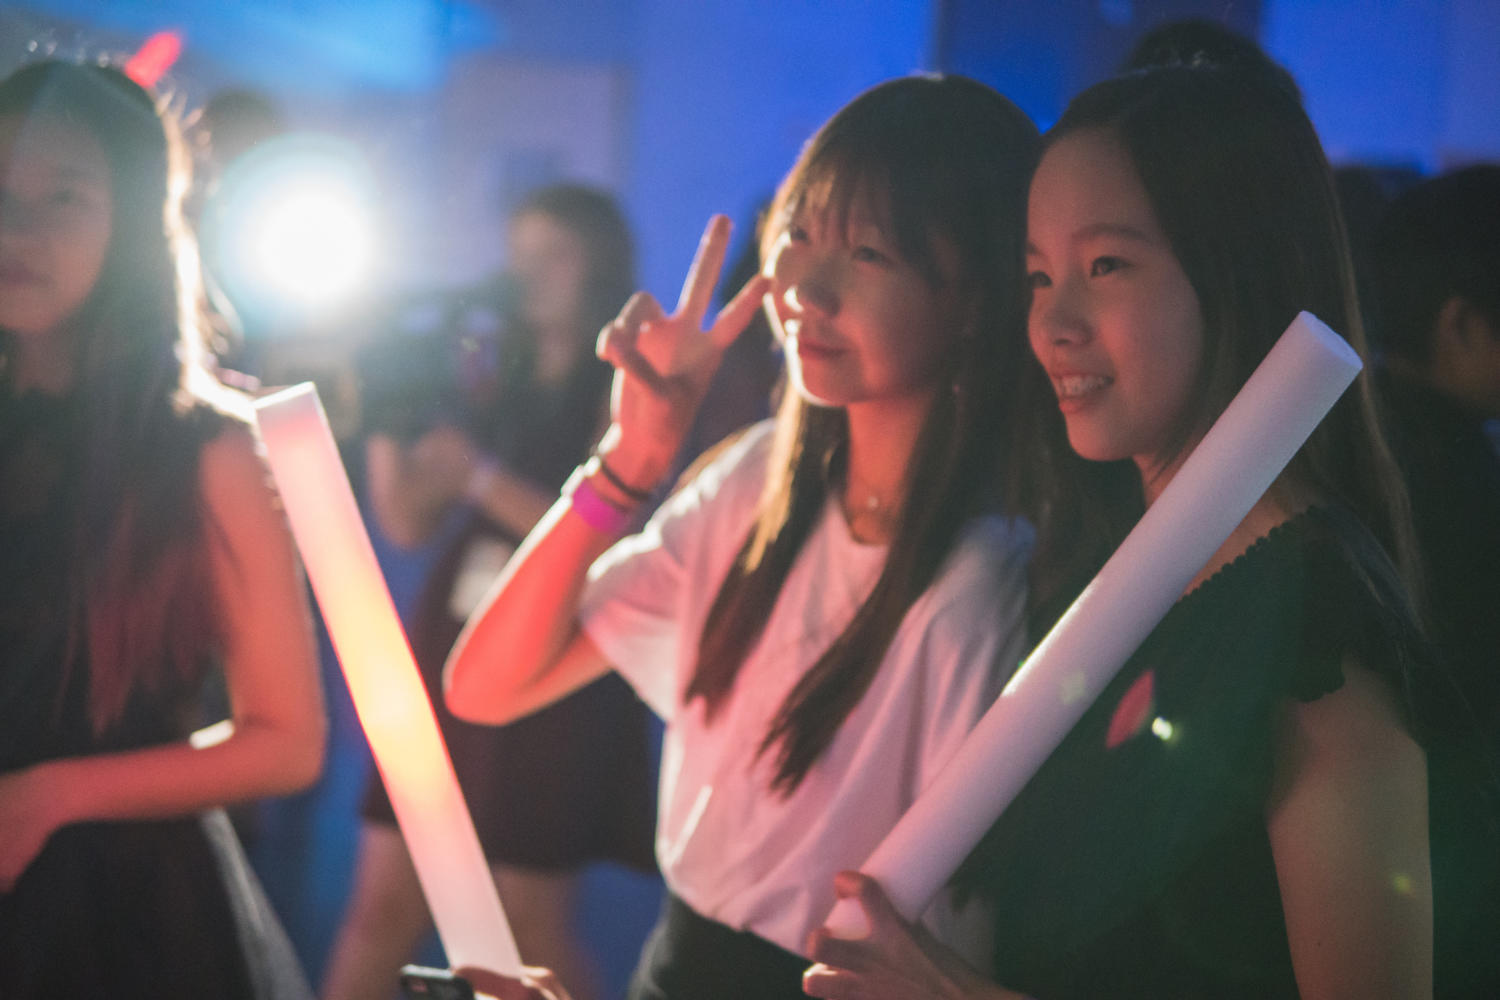 Freshmen Vivian Lin and Mary Lu strike a smile for a photo during the dance.